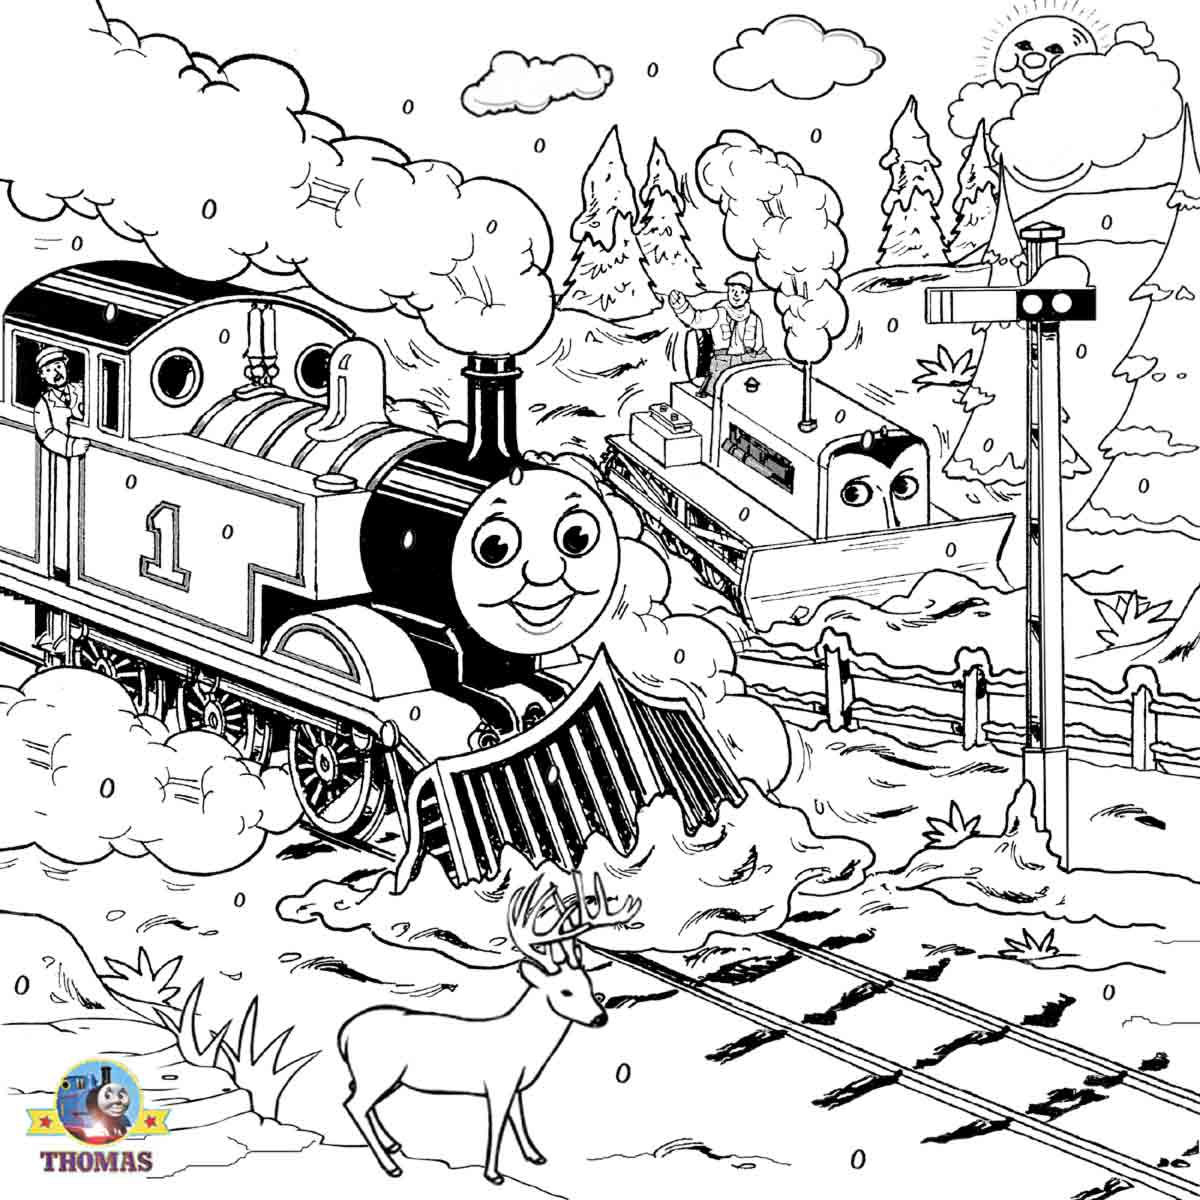 colouring pages thomas the tank engine colouring pages thomas the tank engine engine colouring the thomas pages tank